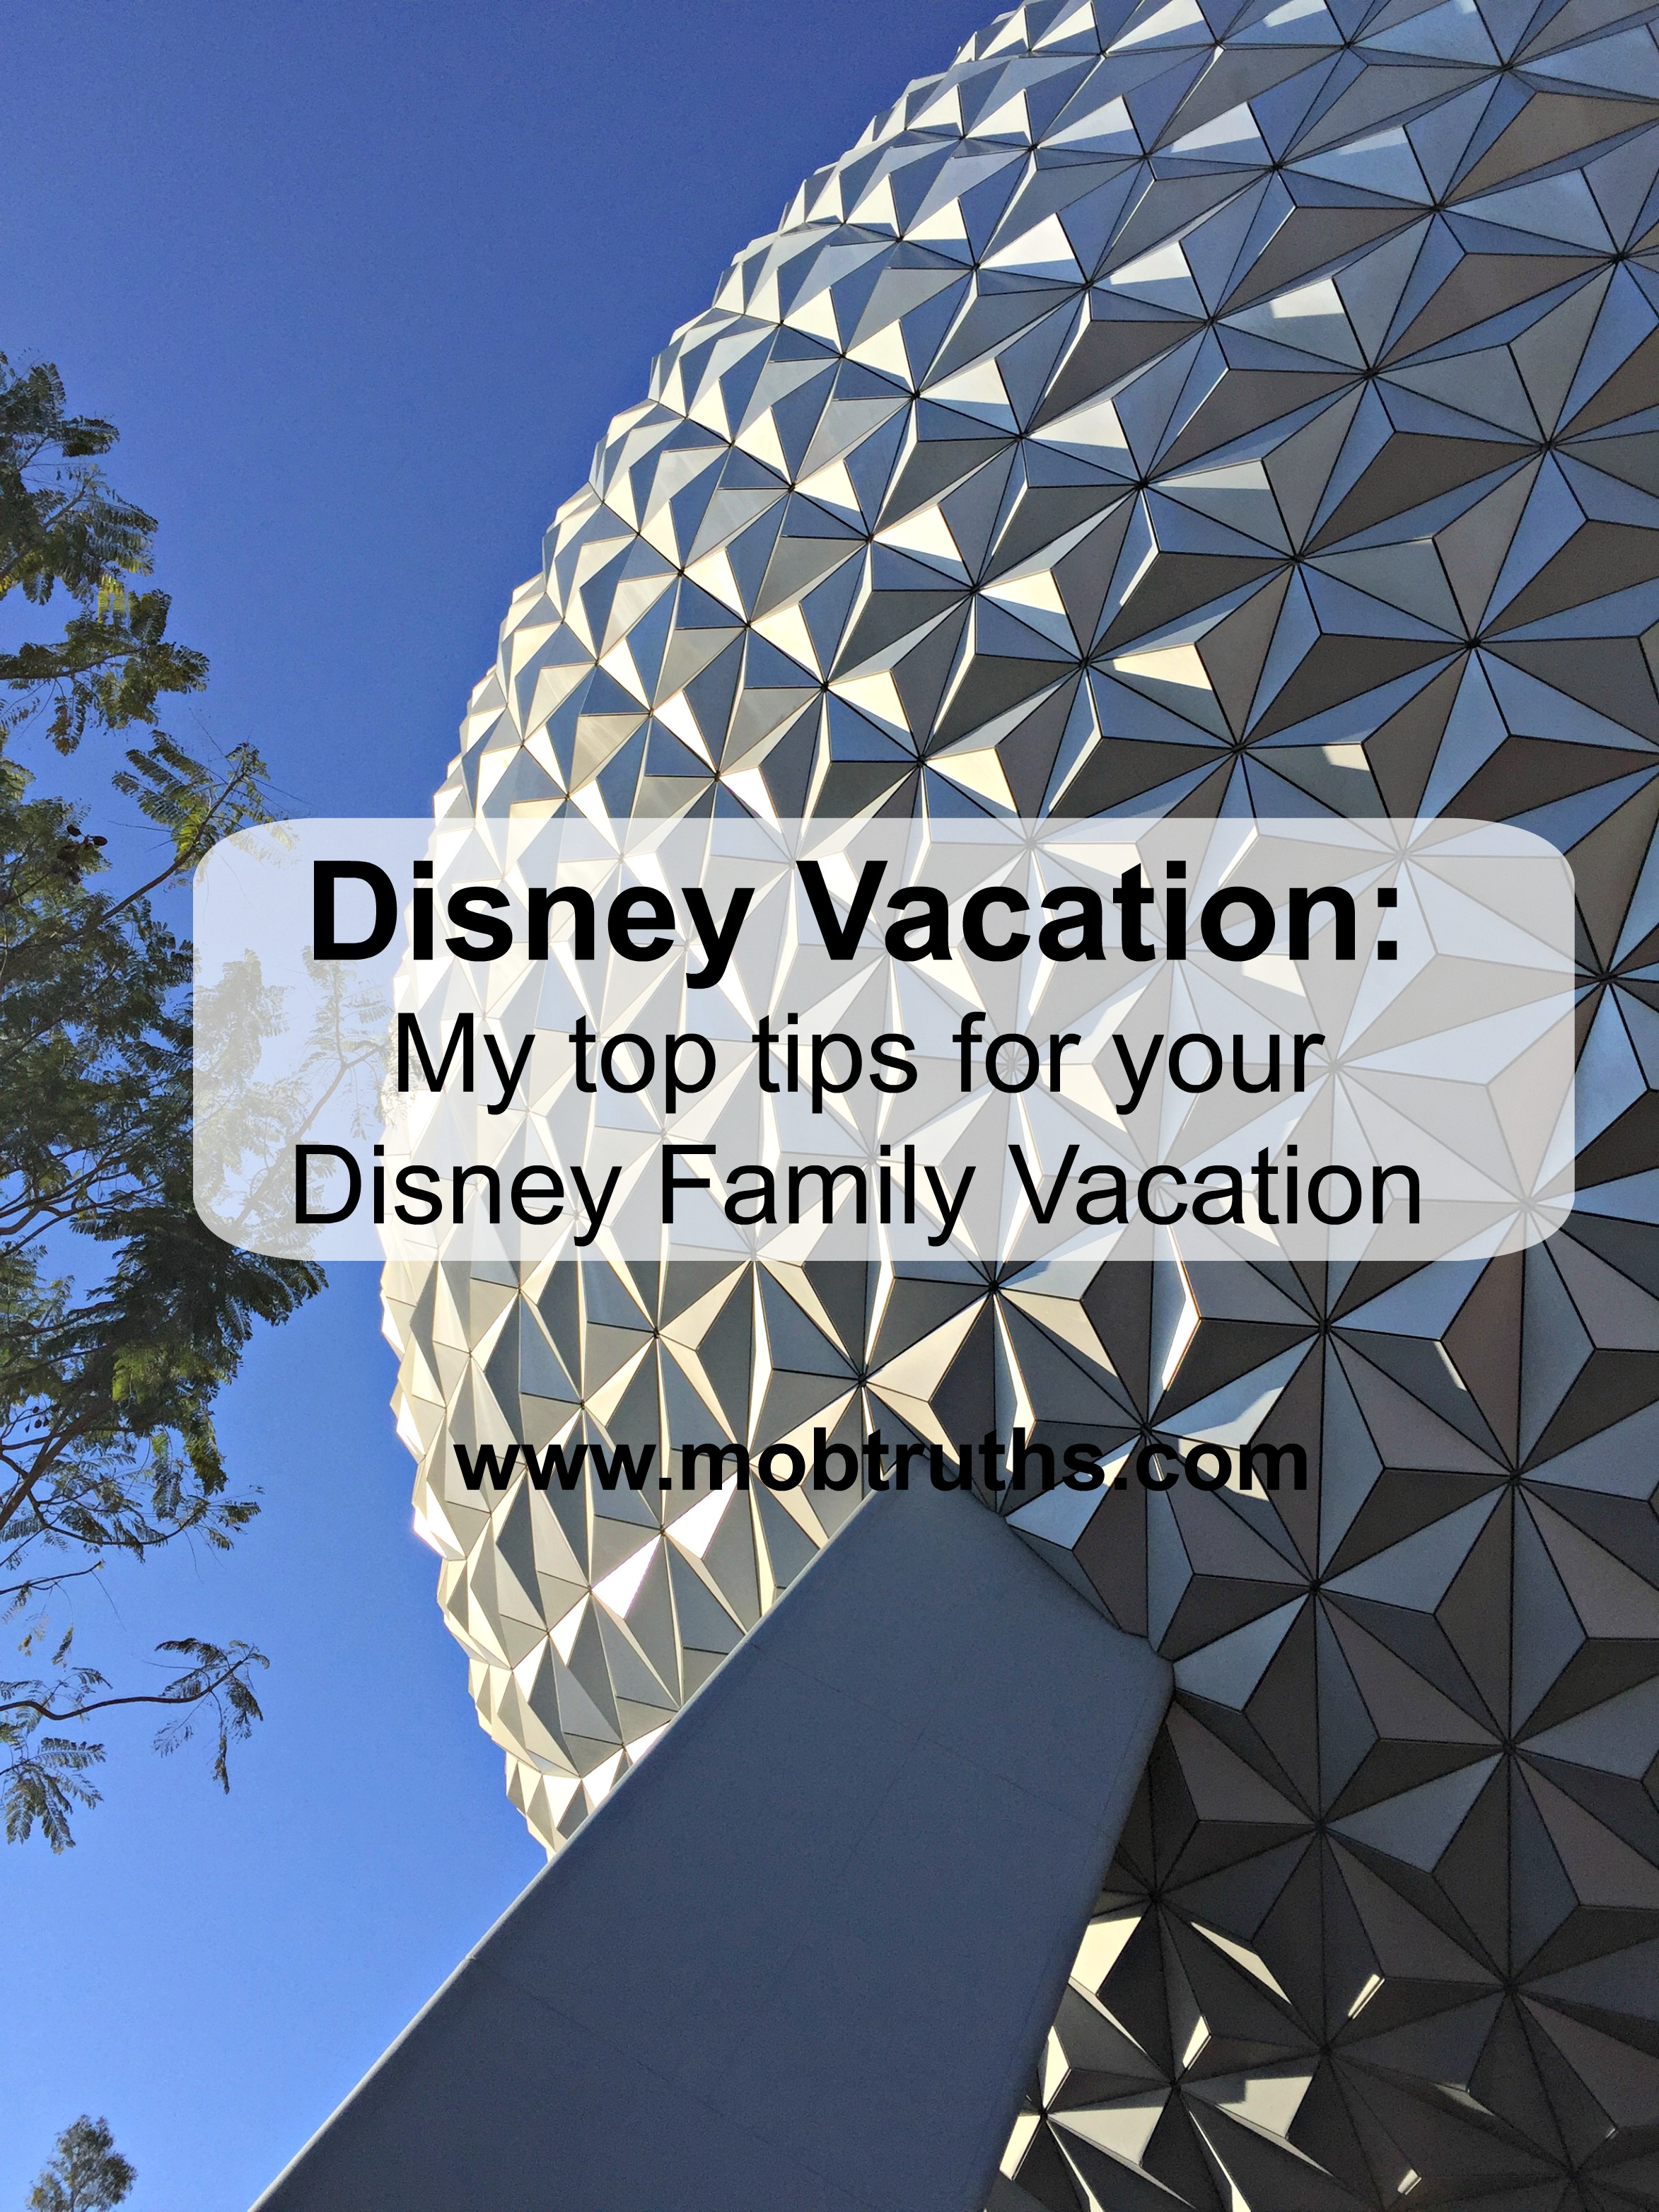 Disney Vacation My top tips for your Disney Family